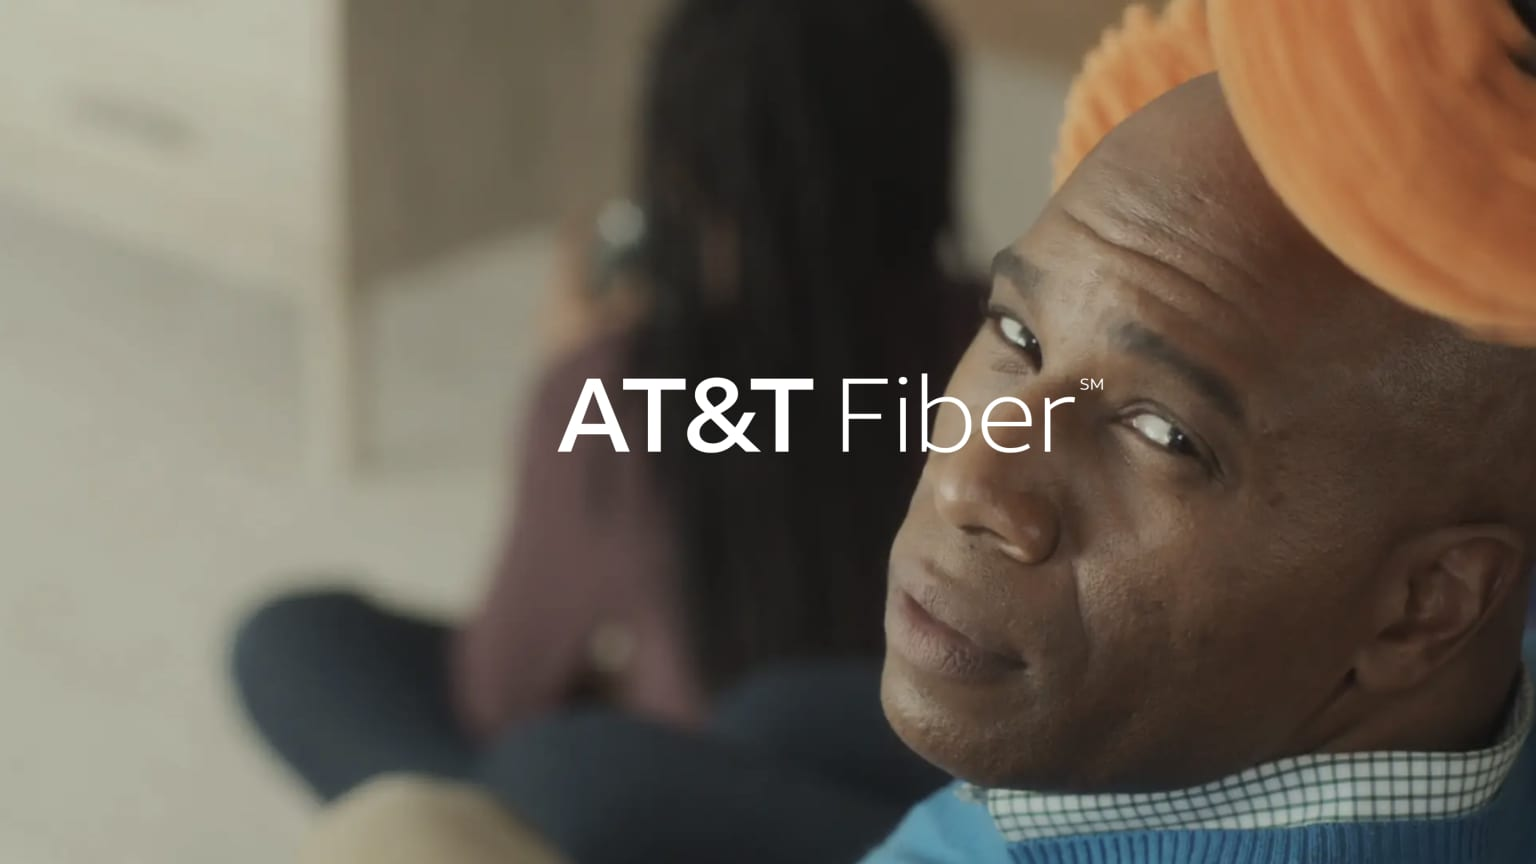 AT&T Fiber: This Must be the Future